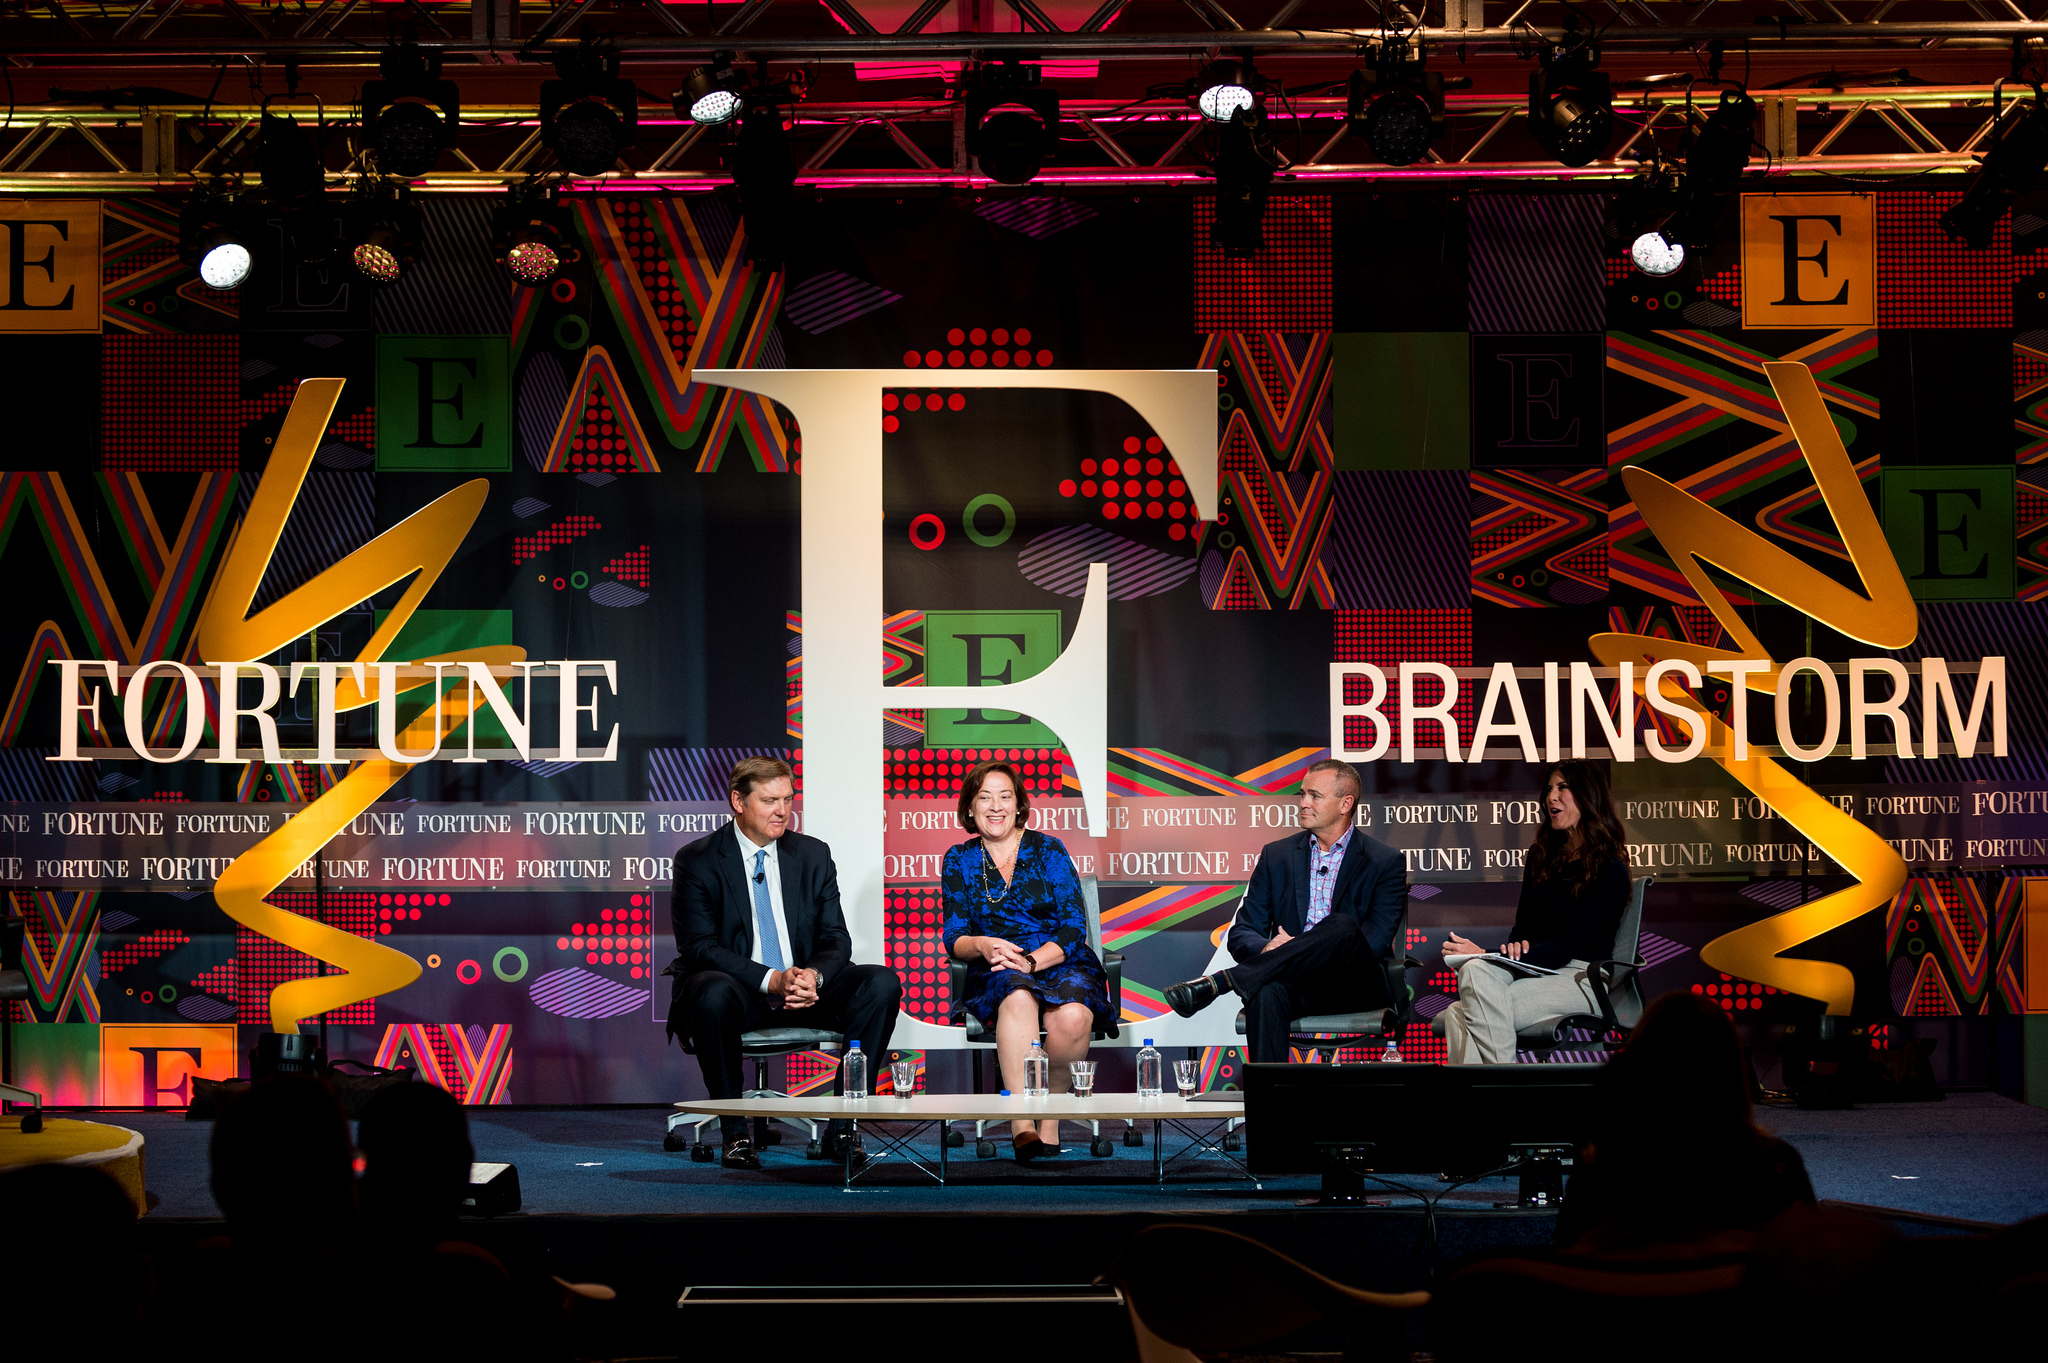 Eric Spiegel of Siemens USA, Diane Regas of Environmental Defense Fund, Jeff Clarke of Dell, and Natalie Allen of CNNi at the 2015 Fortune Brainstorm E conference in Austin, Texas.